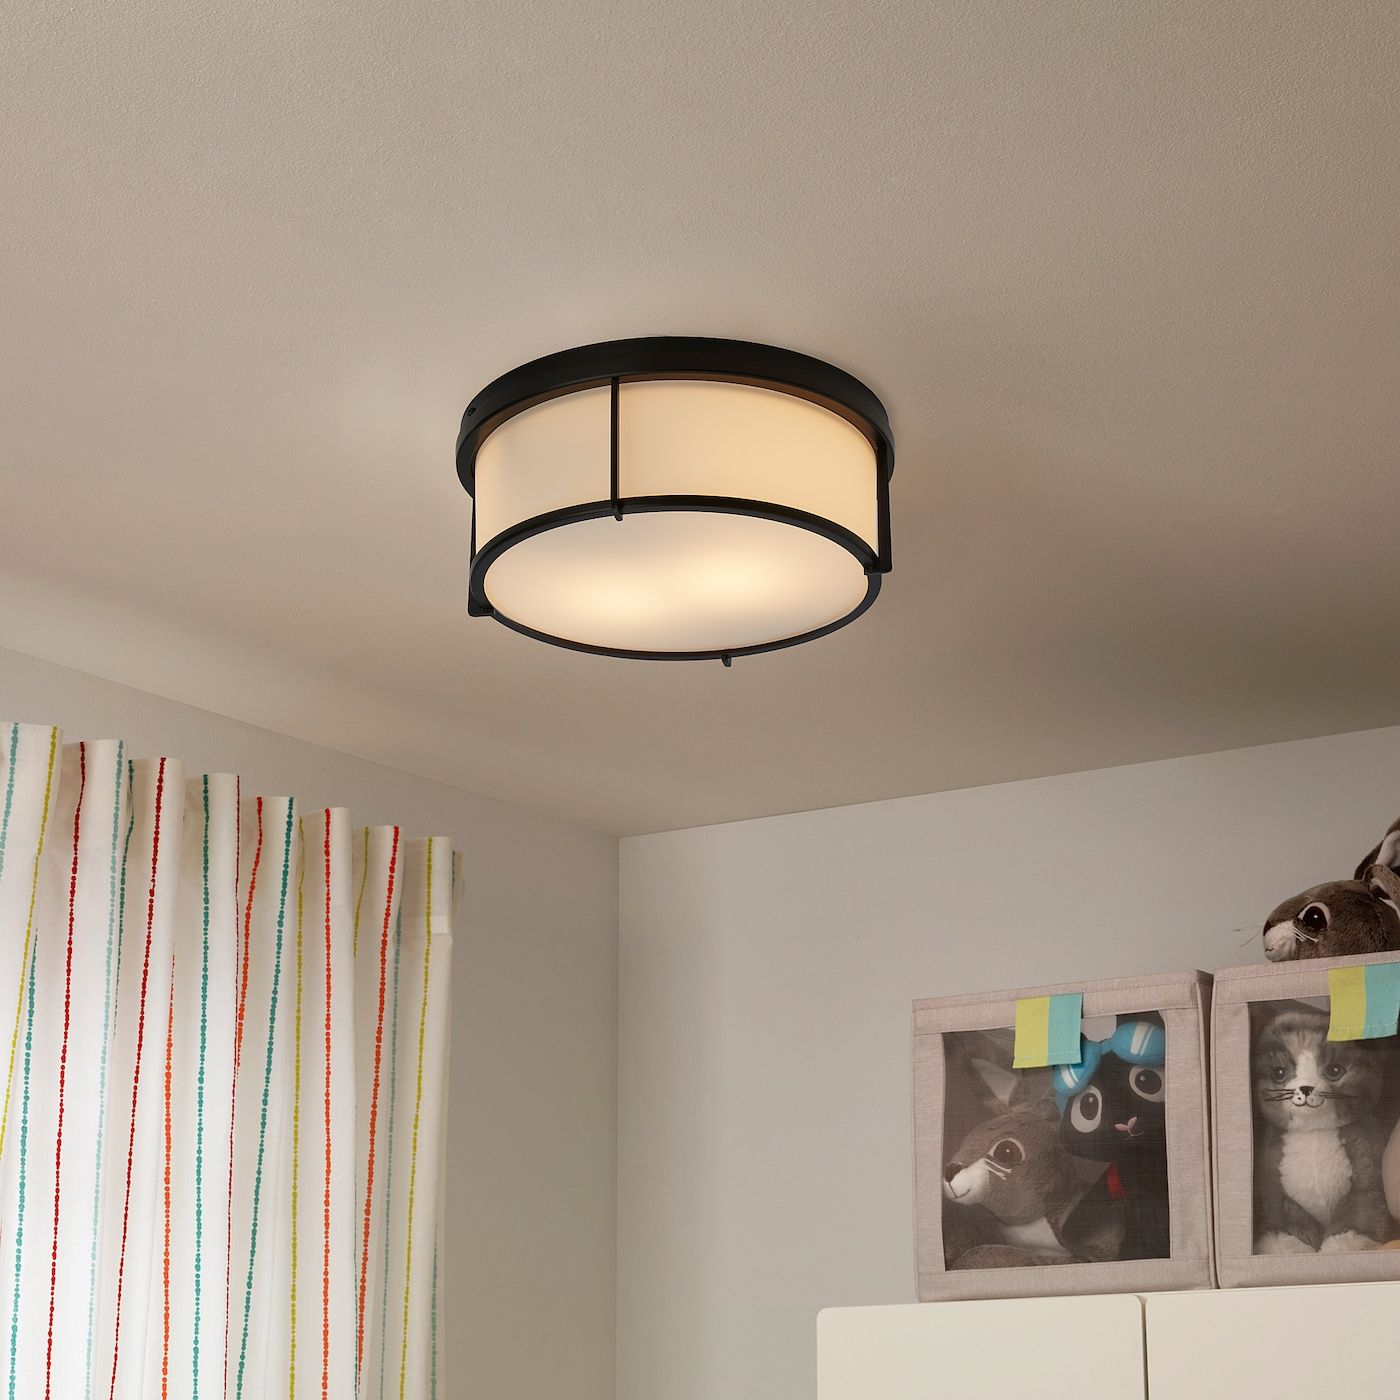 Ikea Kattarp Glass Black Ceiling Lamp In 2020 Ceiling Lamp Ikea Ceiling Light Ceiling